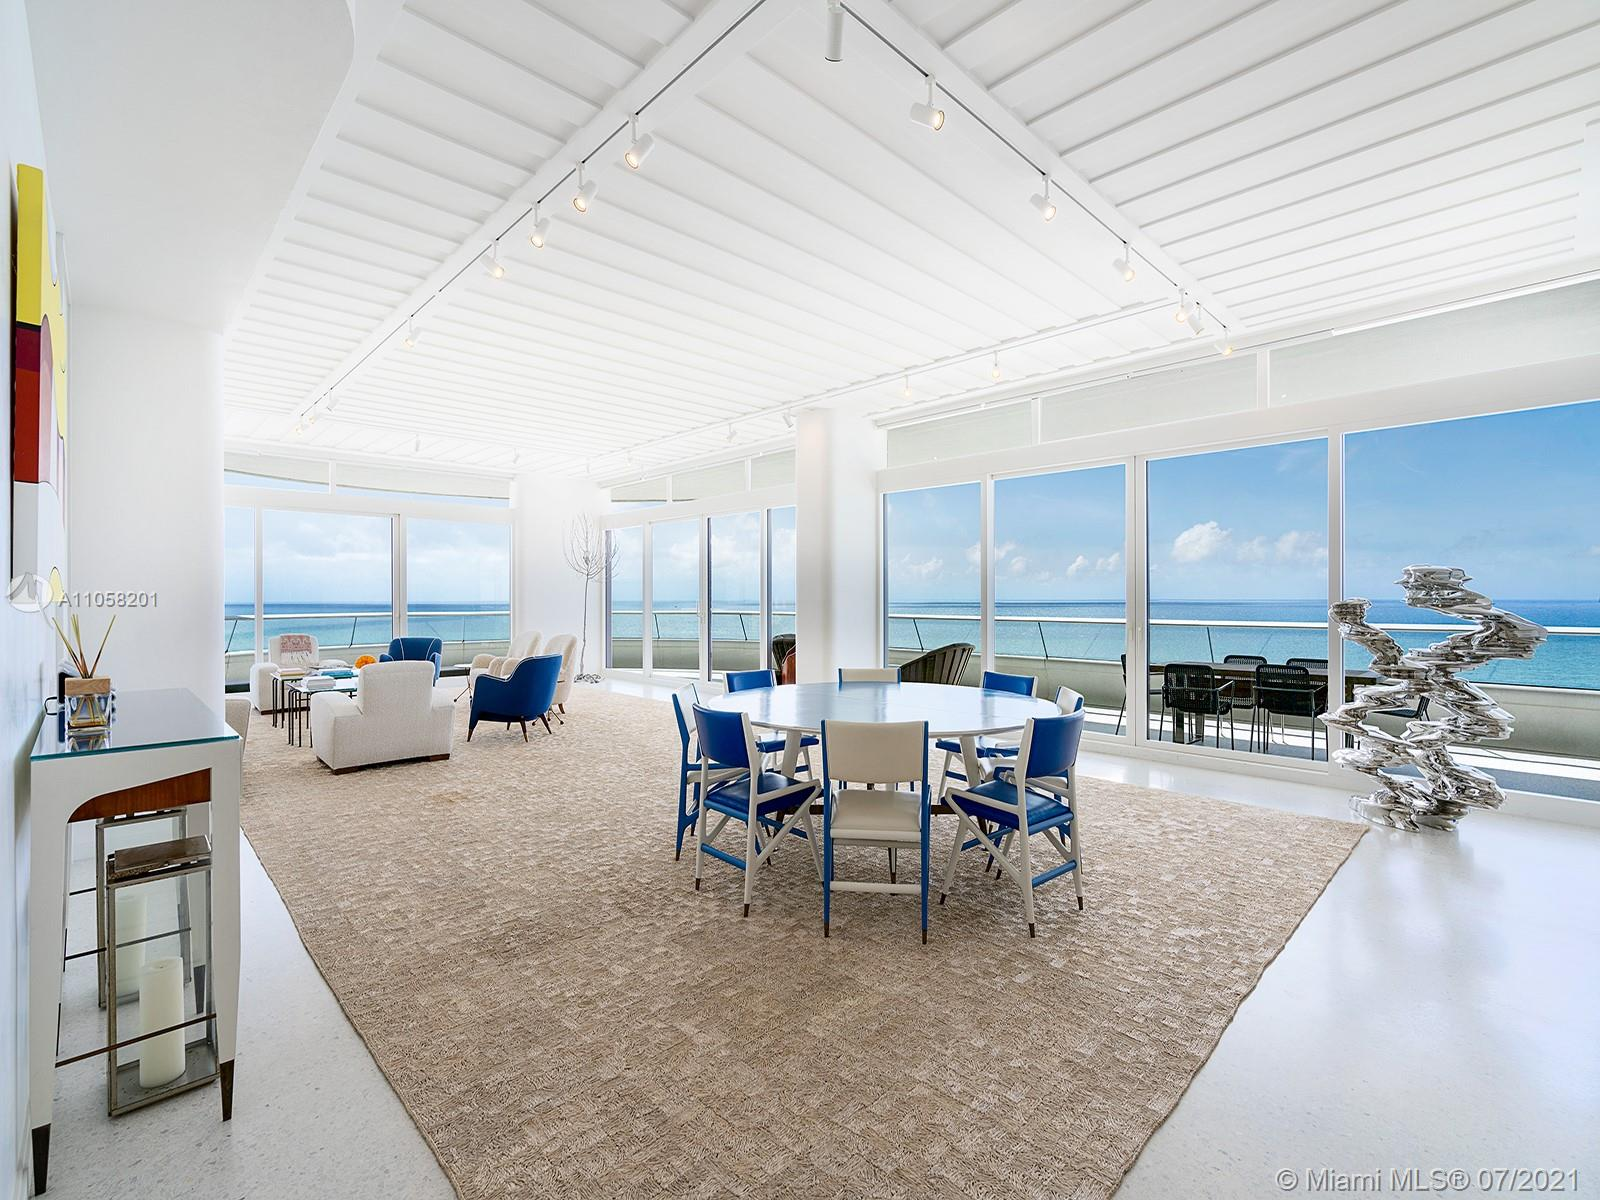 Listing Image 3315 Collins Ave #14A